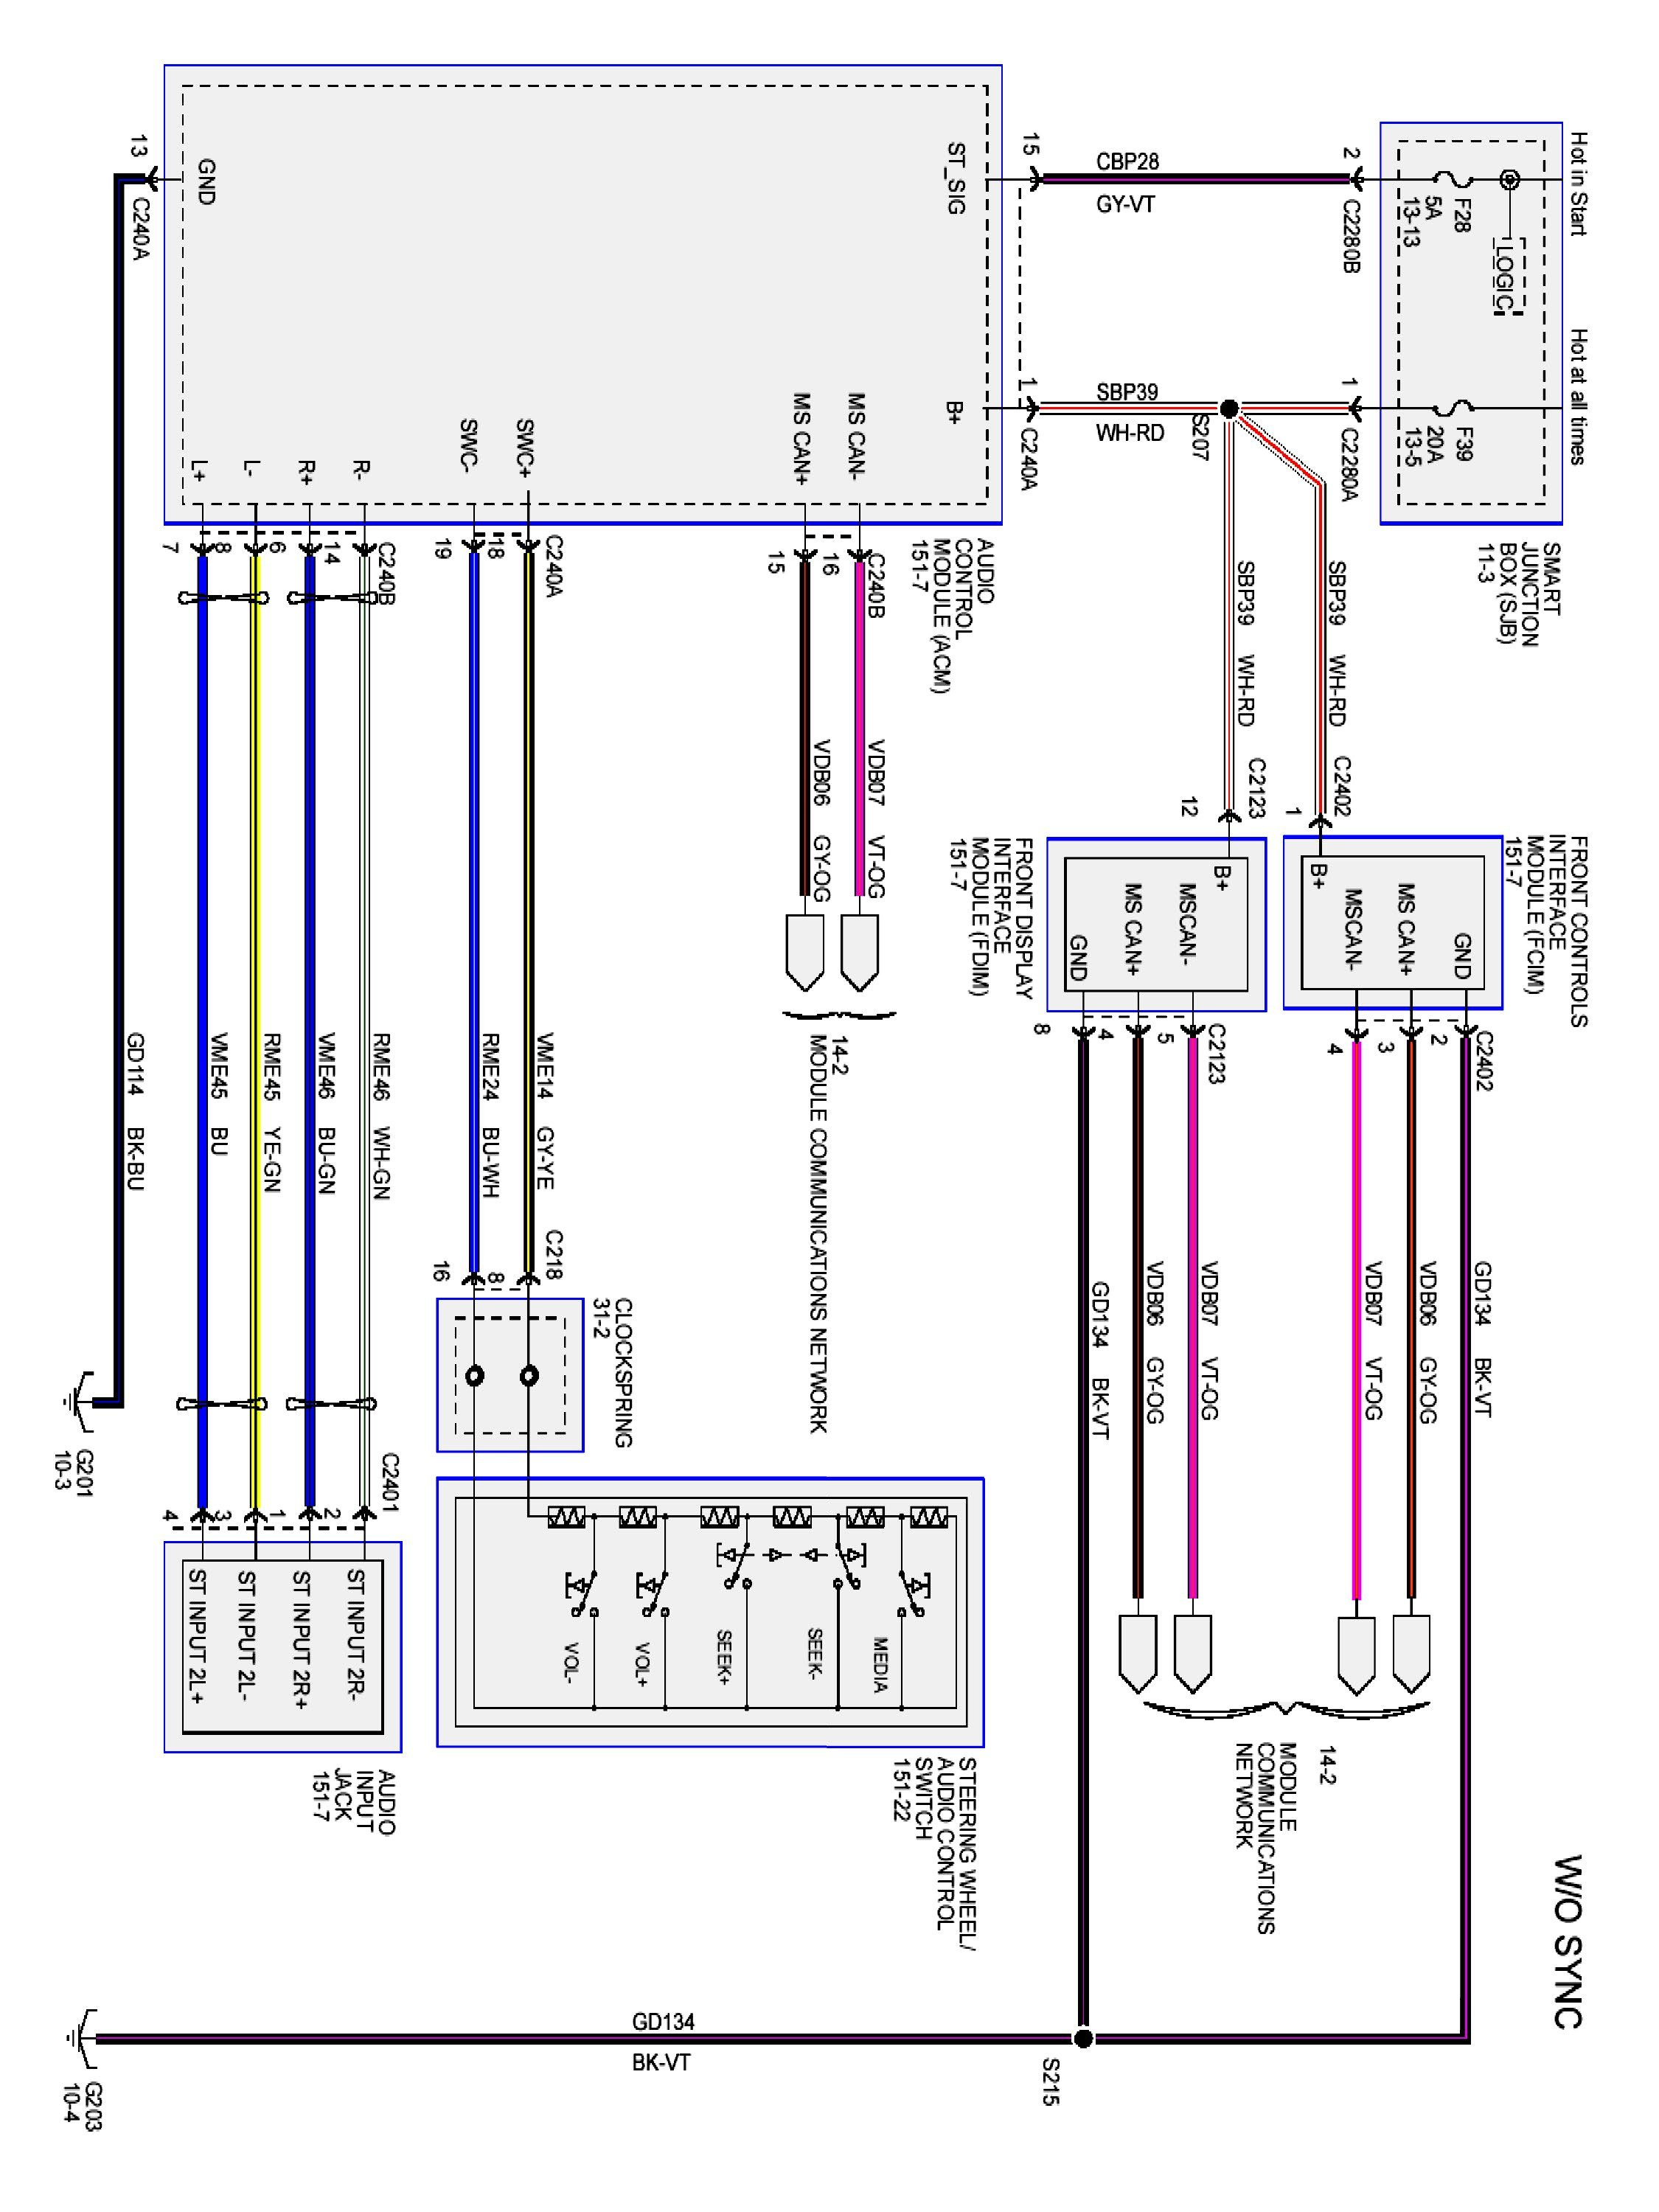 2000 ford excursion wiring diagram xs 9243  2003 ford excursion engine diagram  xs 9243  2003 ford excursion engine diagram